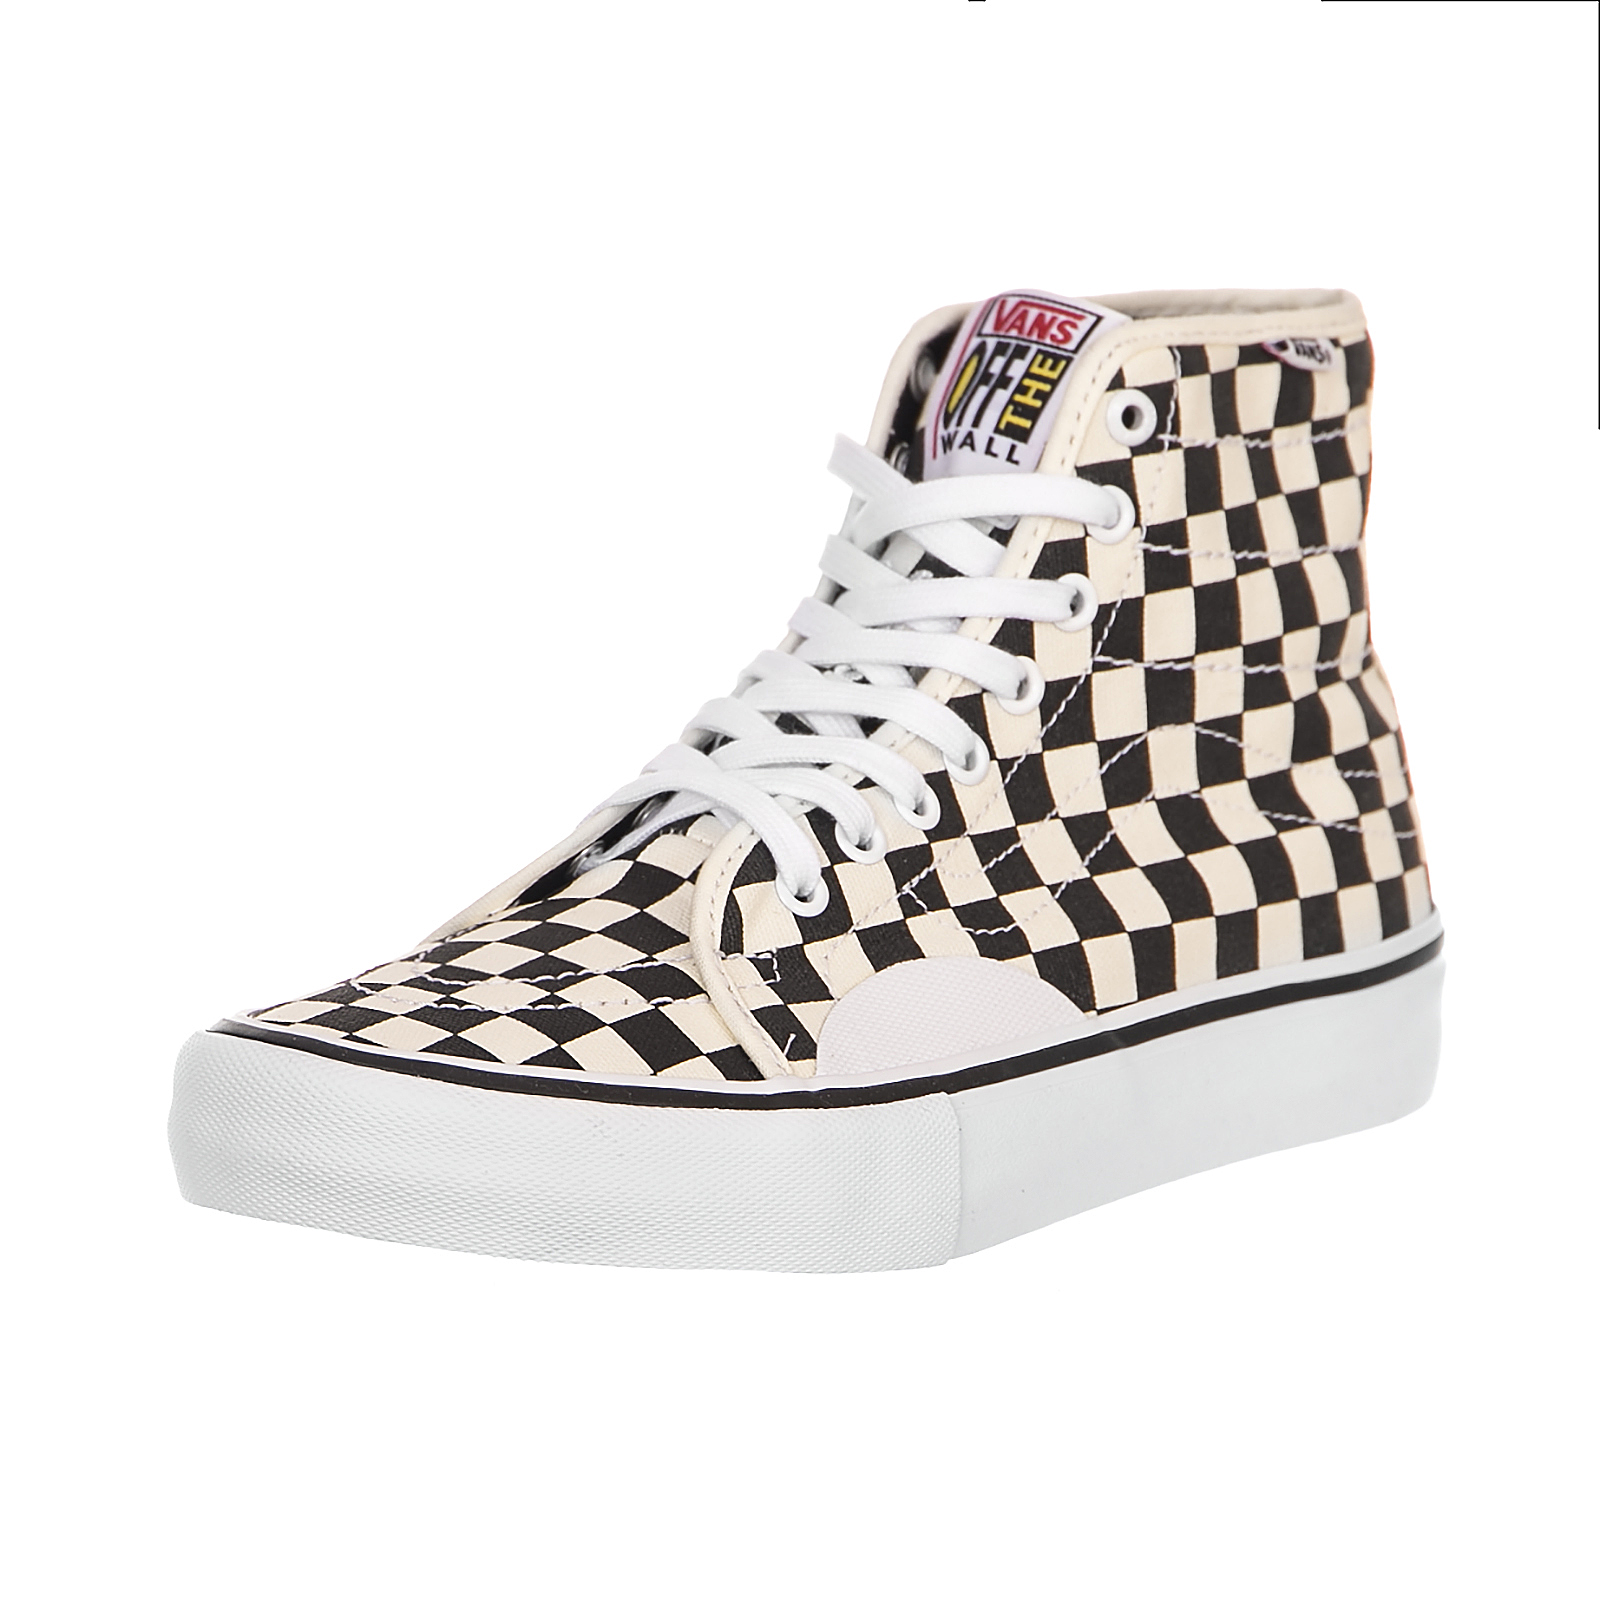 289588ab034005 Vans Sneakers Mn Av Classic High P (Chckrbrd)Bl White